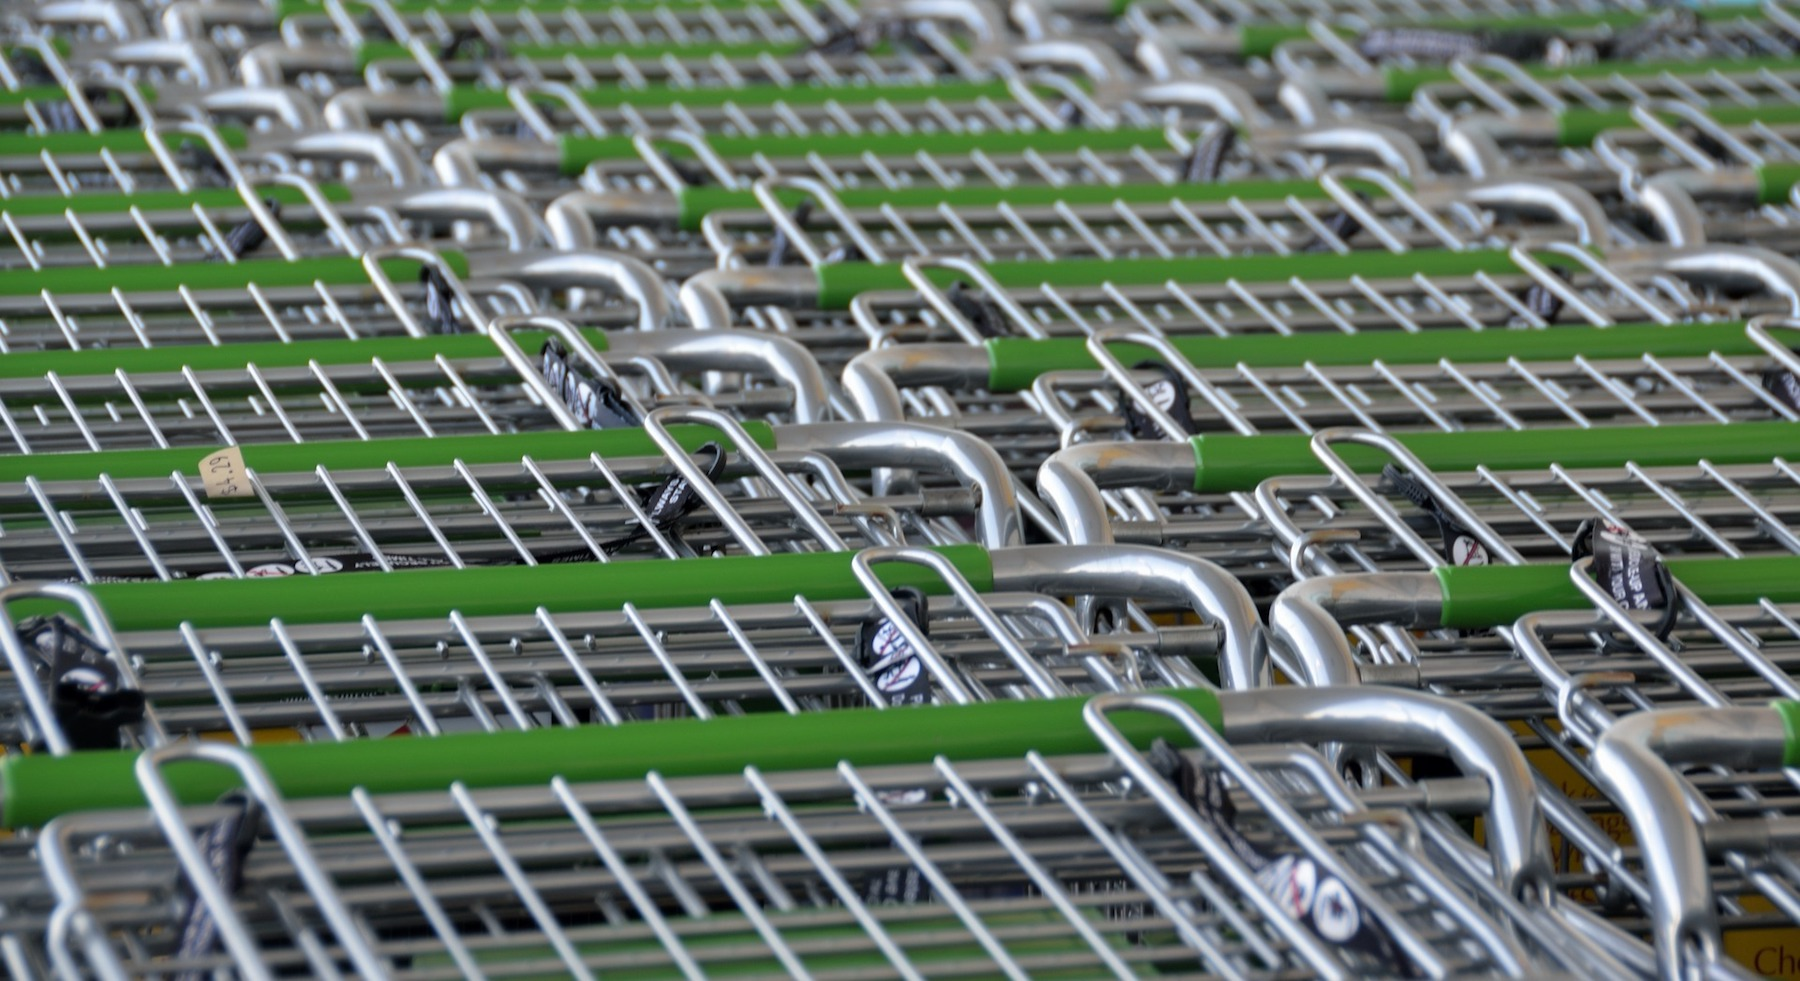 shopping-carts-2077841 1920